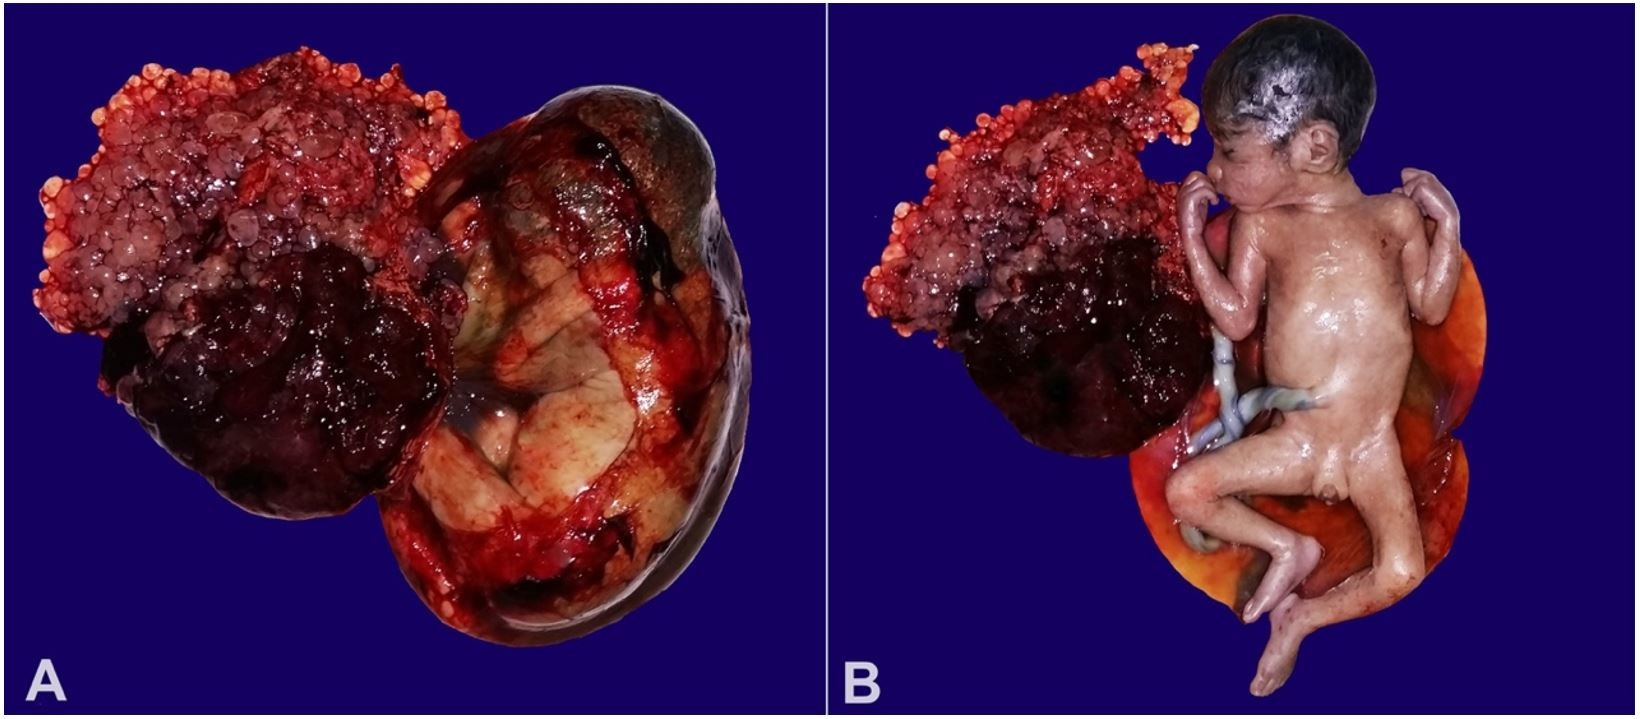 Gross view of the - A – Placenta with villi; B – Fetus with normal phenotype.